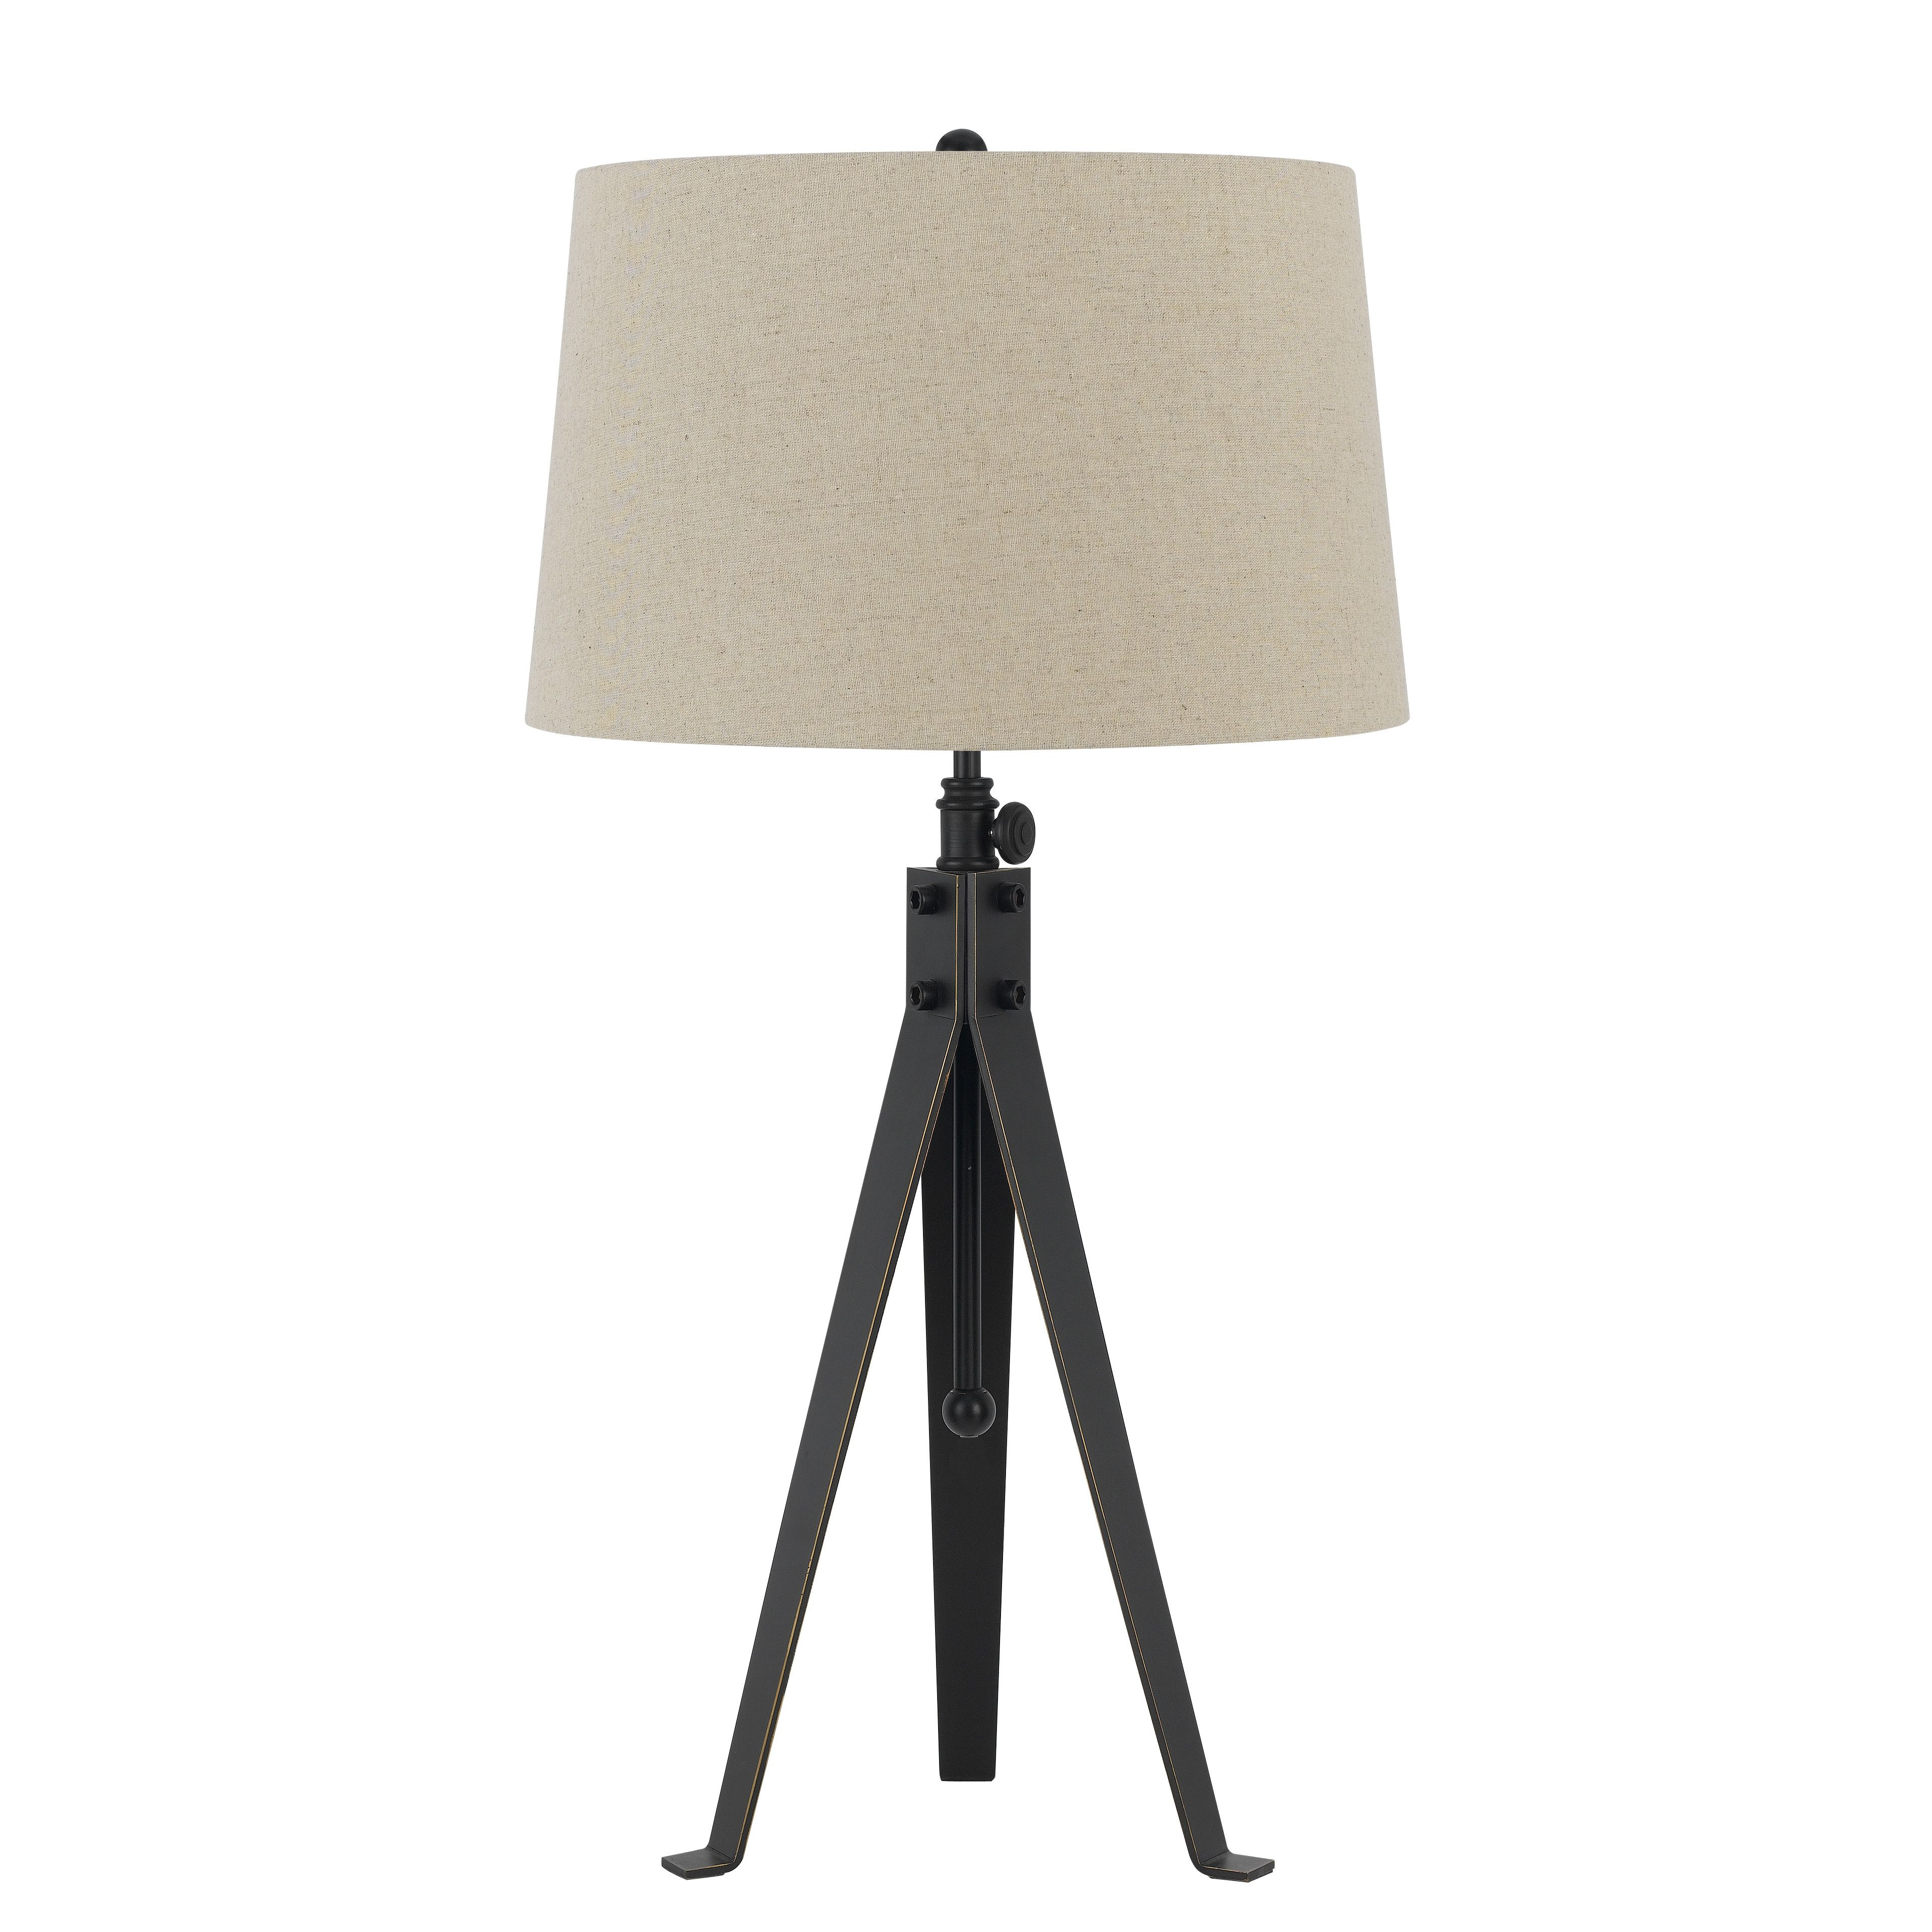 Cal Lighting Tripod 3 Way 325 H Table Lamp With Empire Shade